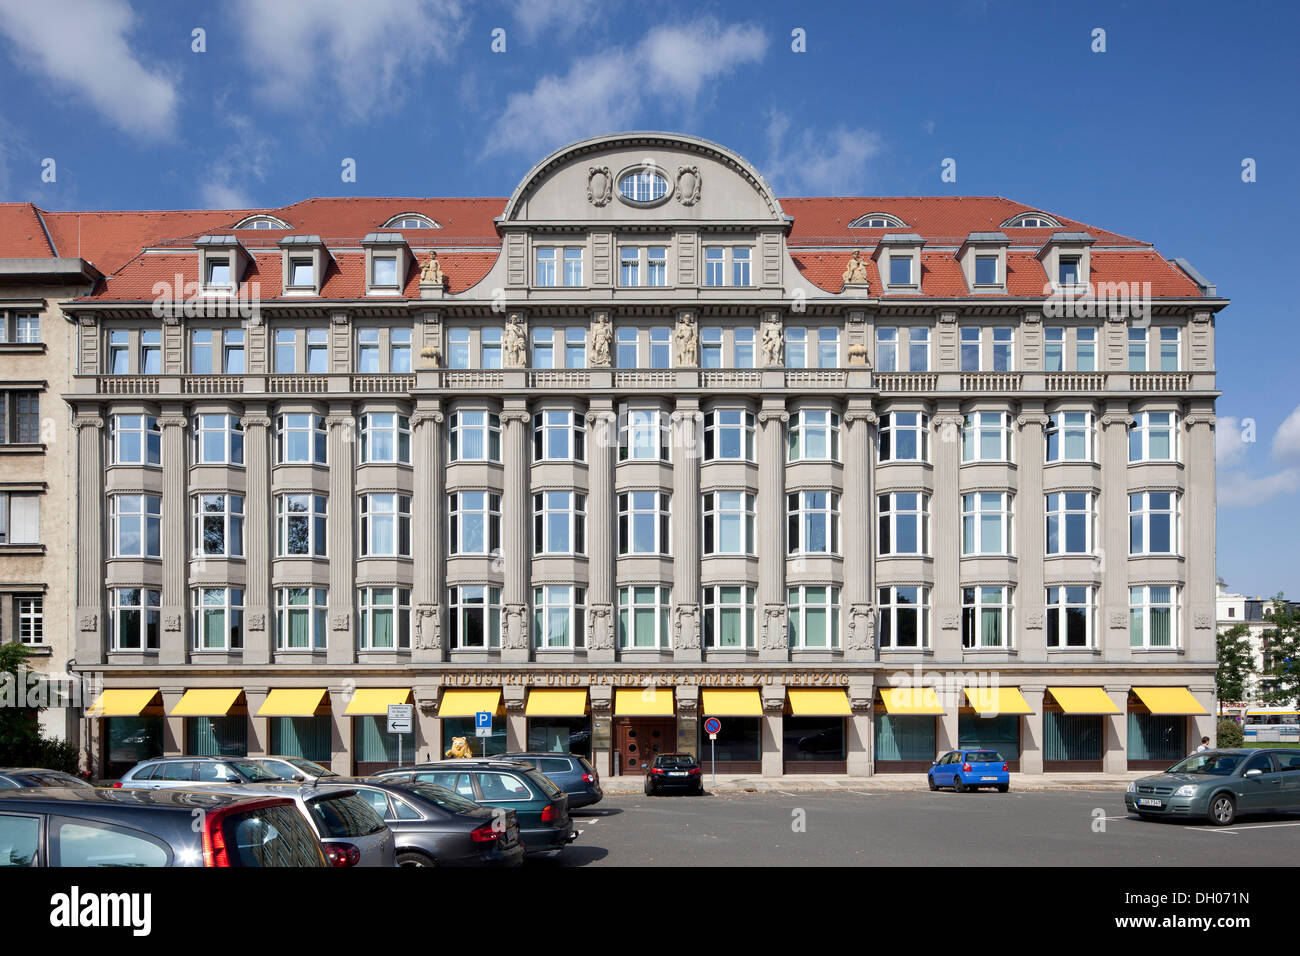 Bâtiment de la Chambre de Commerce et d'Industrie, Leipzig, PublicGround Photo Stock